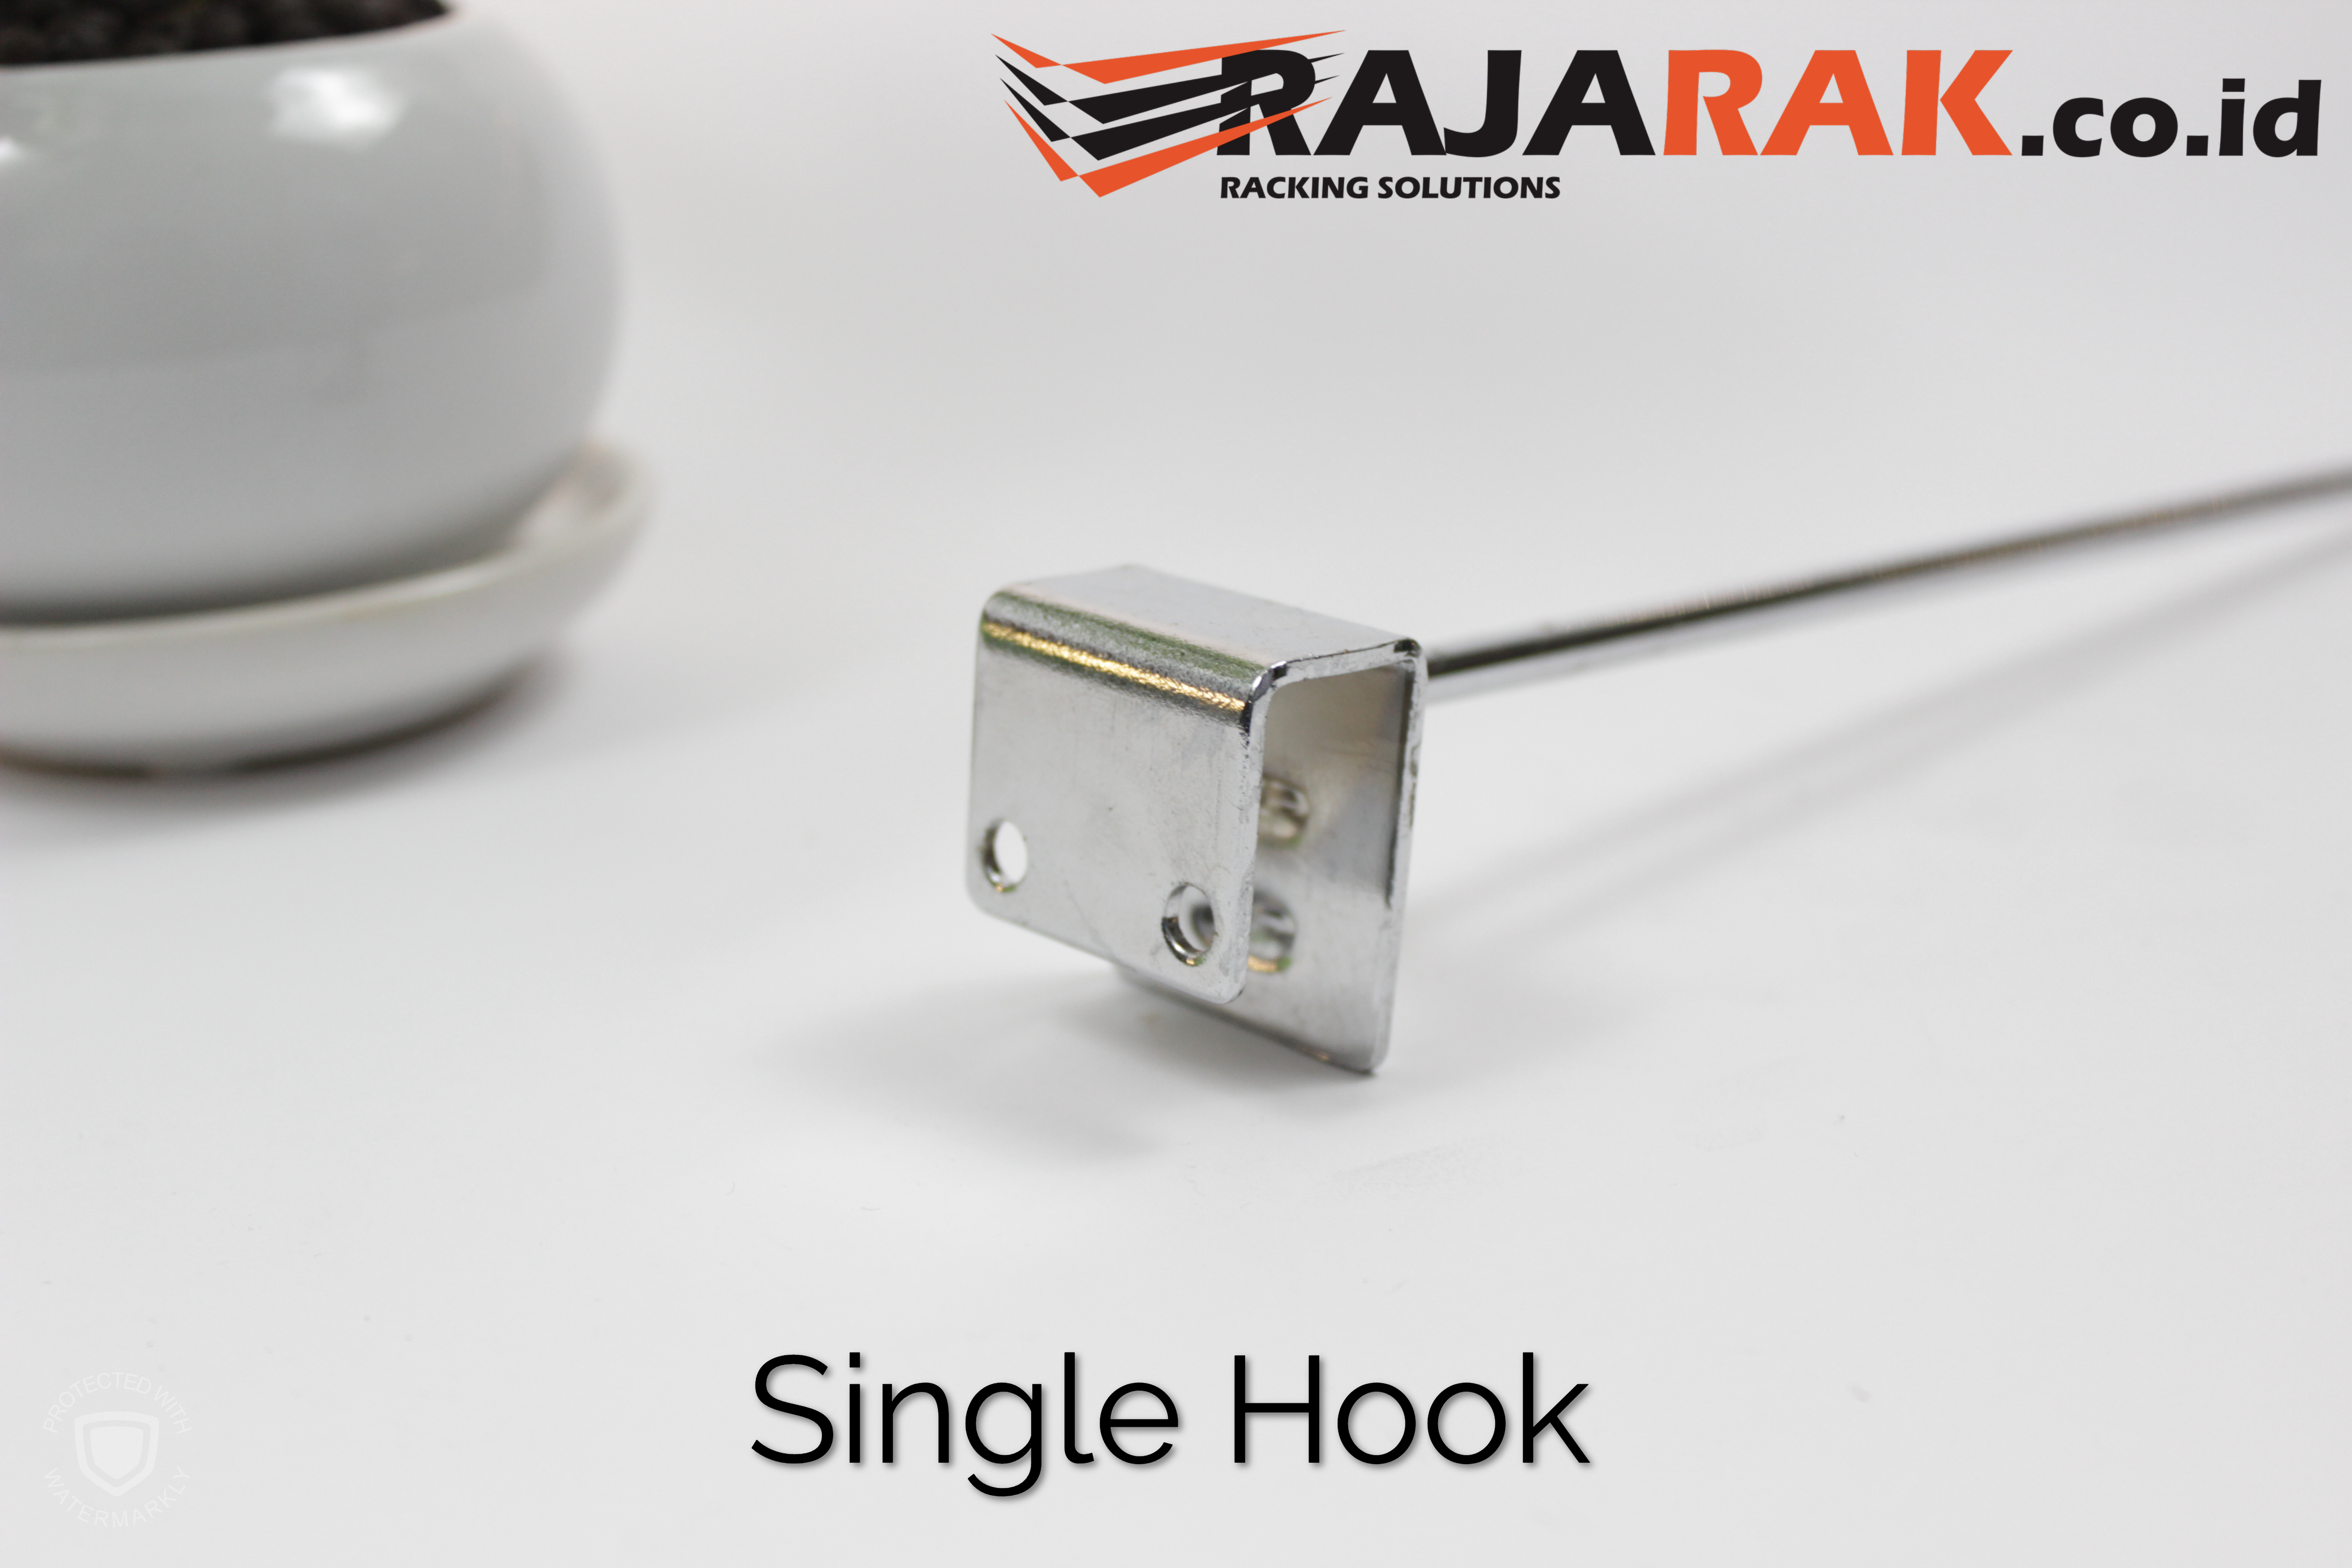 Single Hook 5 cm CHROME - Single Hook Pipa Kotak - Cantolan Kotak Display Aksesoris